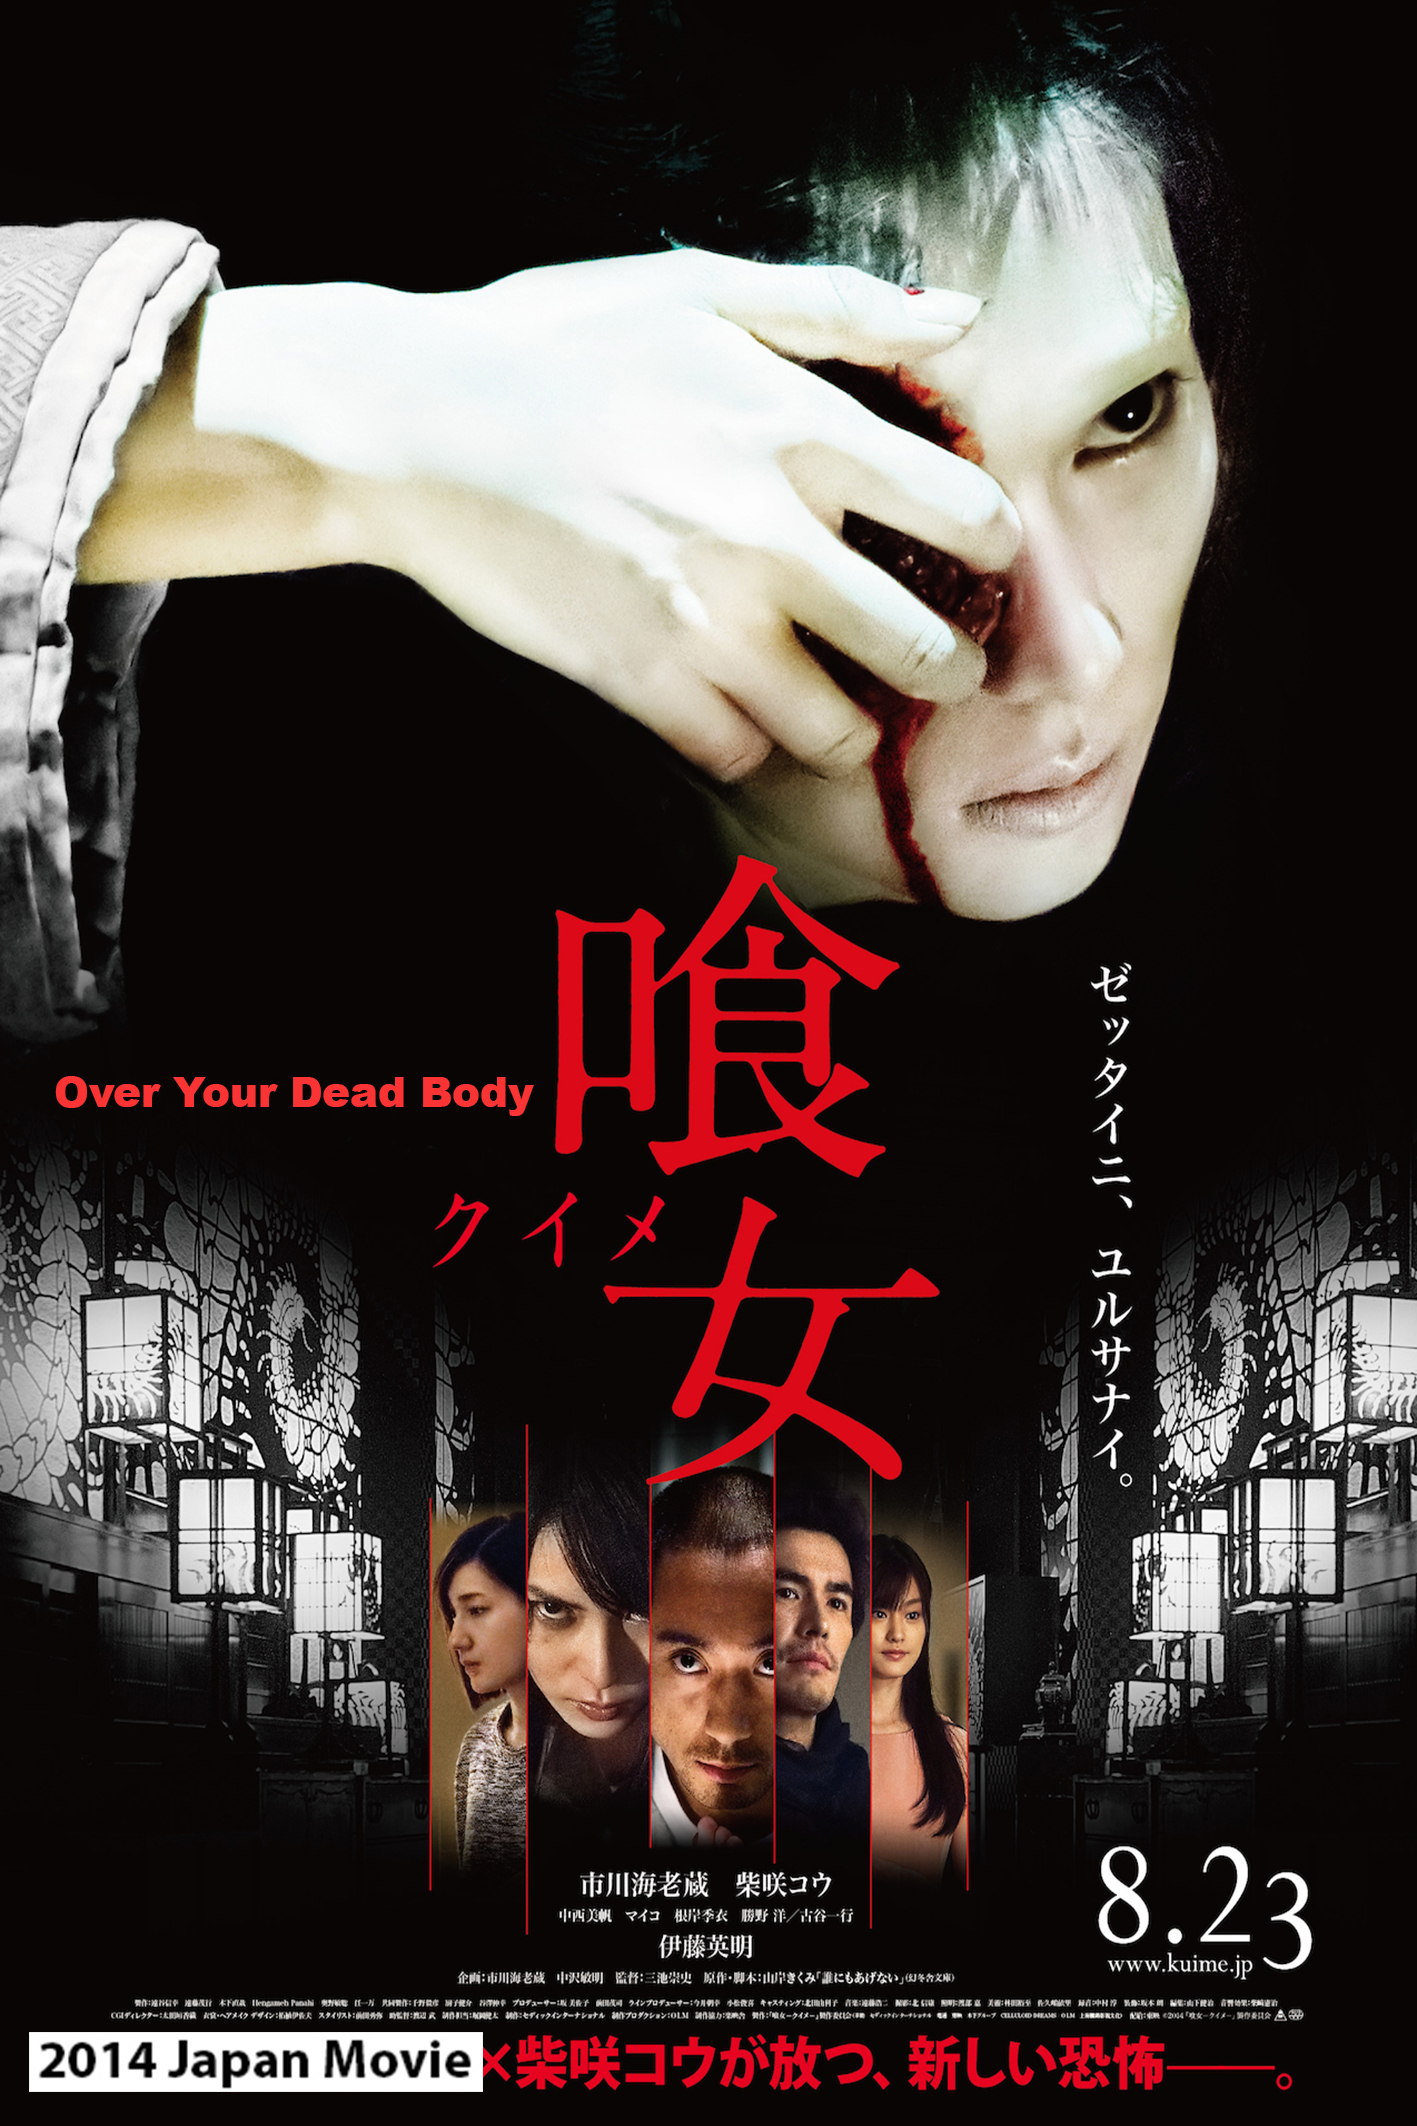 Over Your Dead Body [2014 Japan Movie]